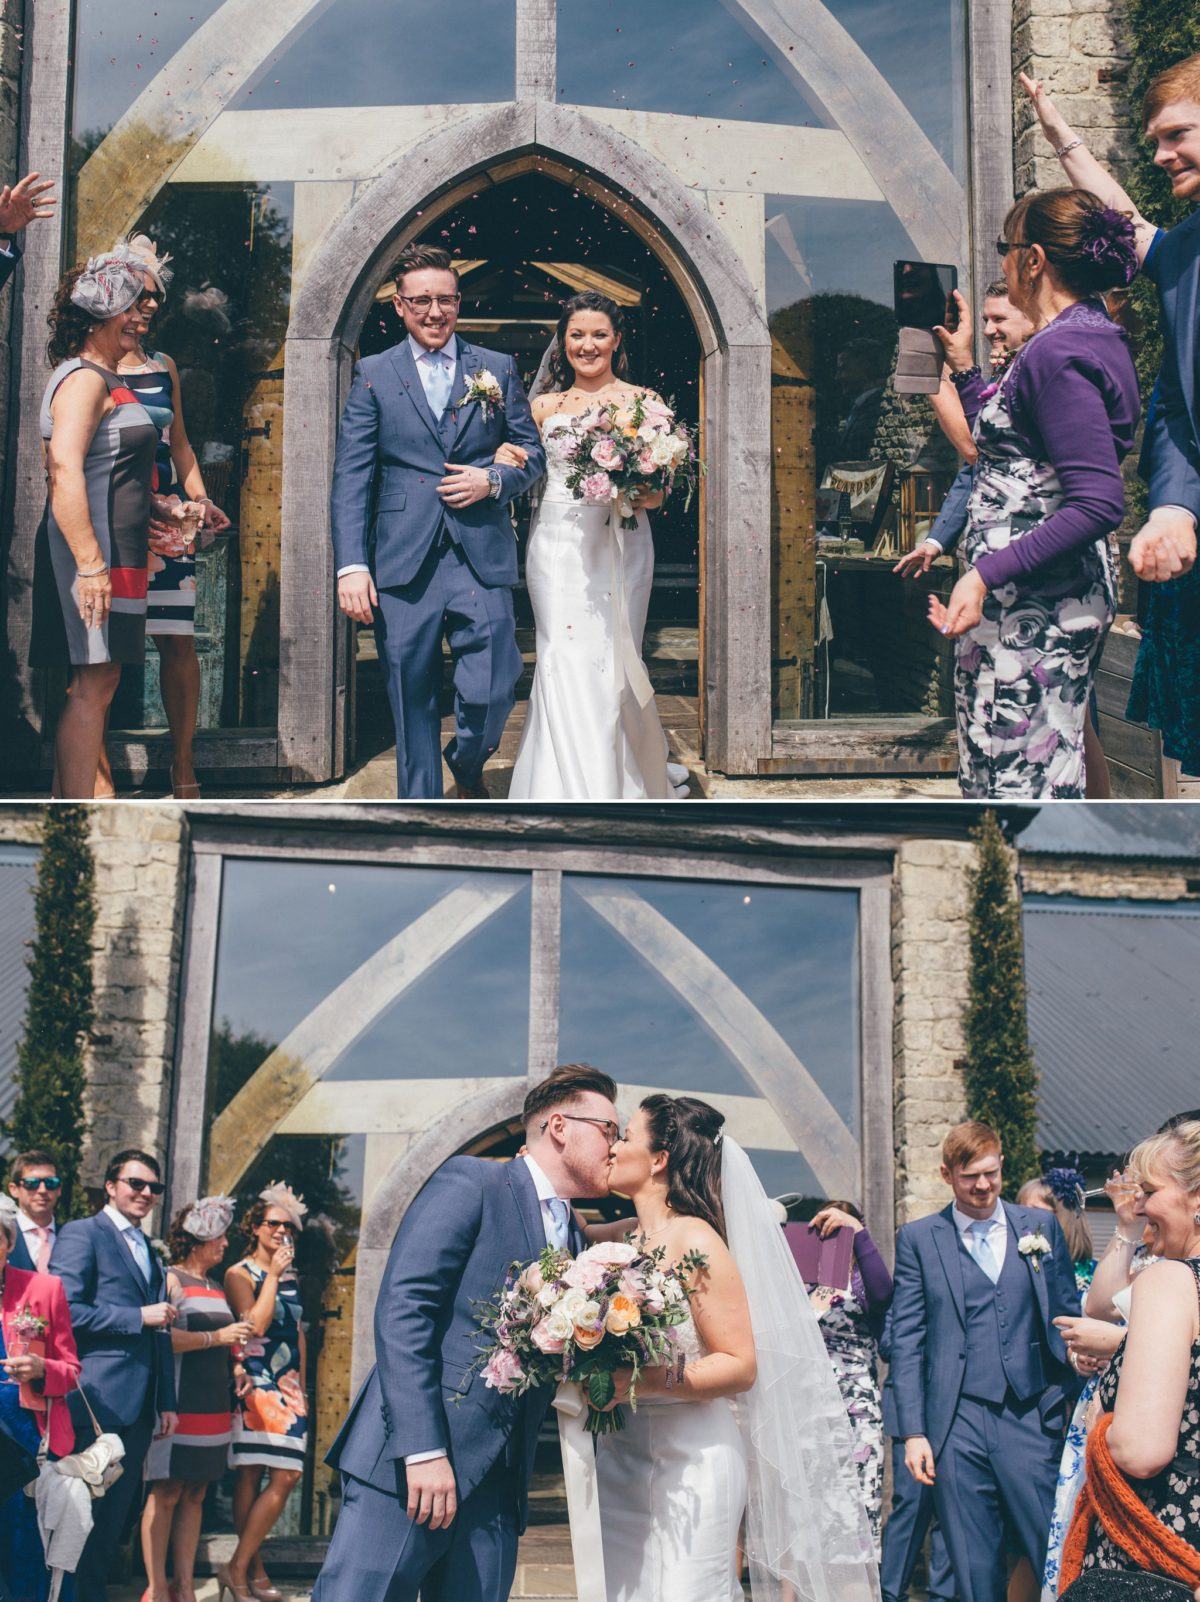 cripps_barn_gloucesterhsire_welsh_wedding_photographer_rachel_lambert_photography_jordan_amy_ 74